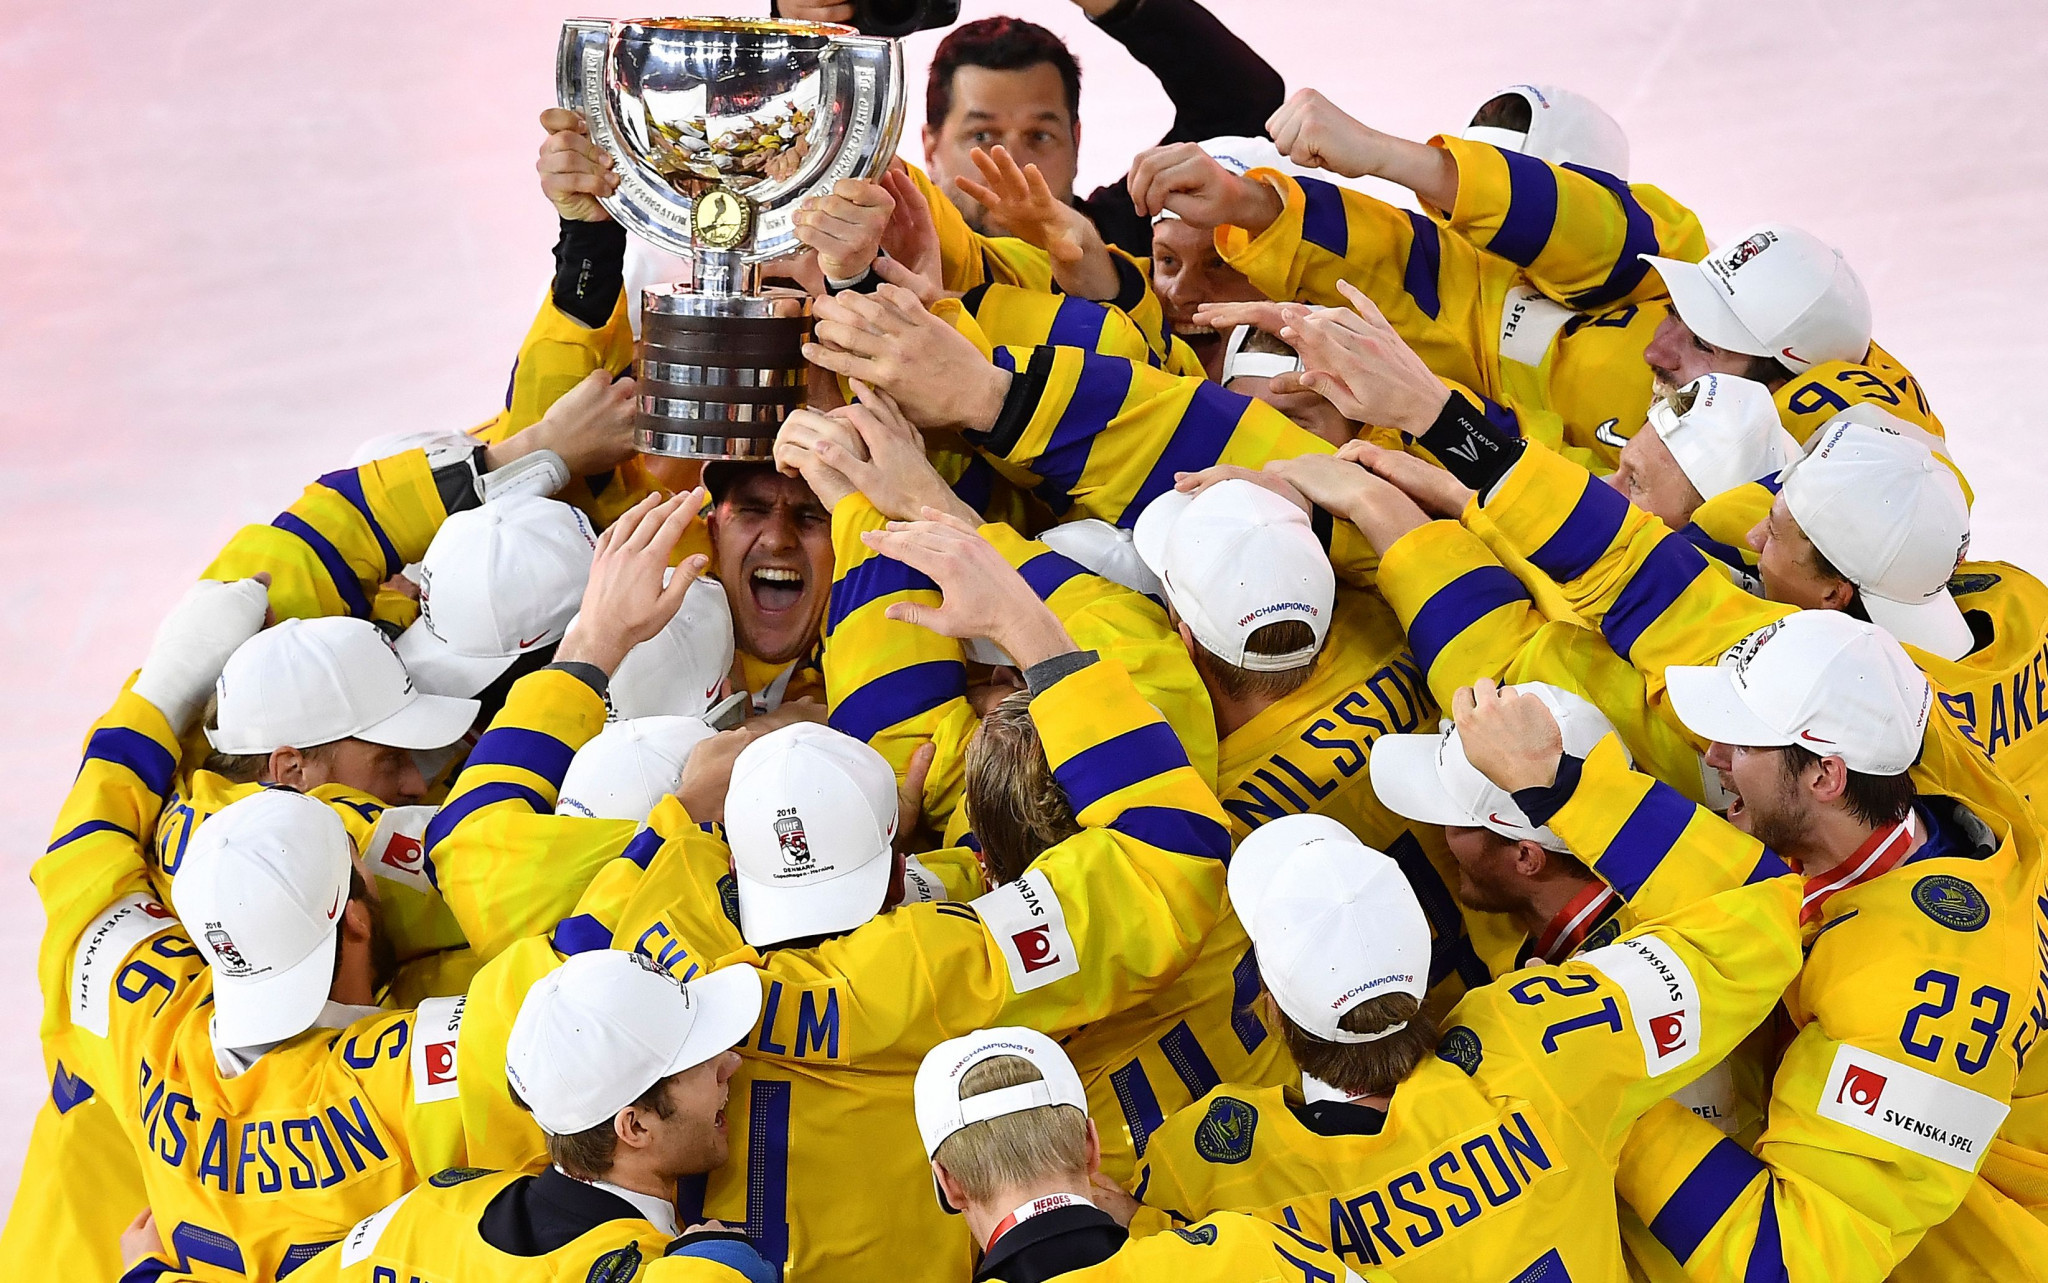 Sweden looking to retain title at IIHF World Championship in Slovakia